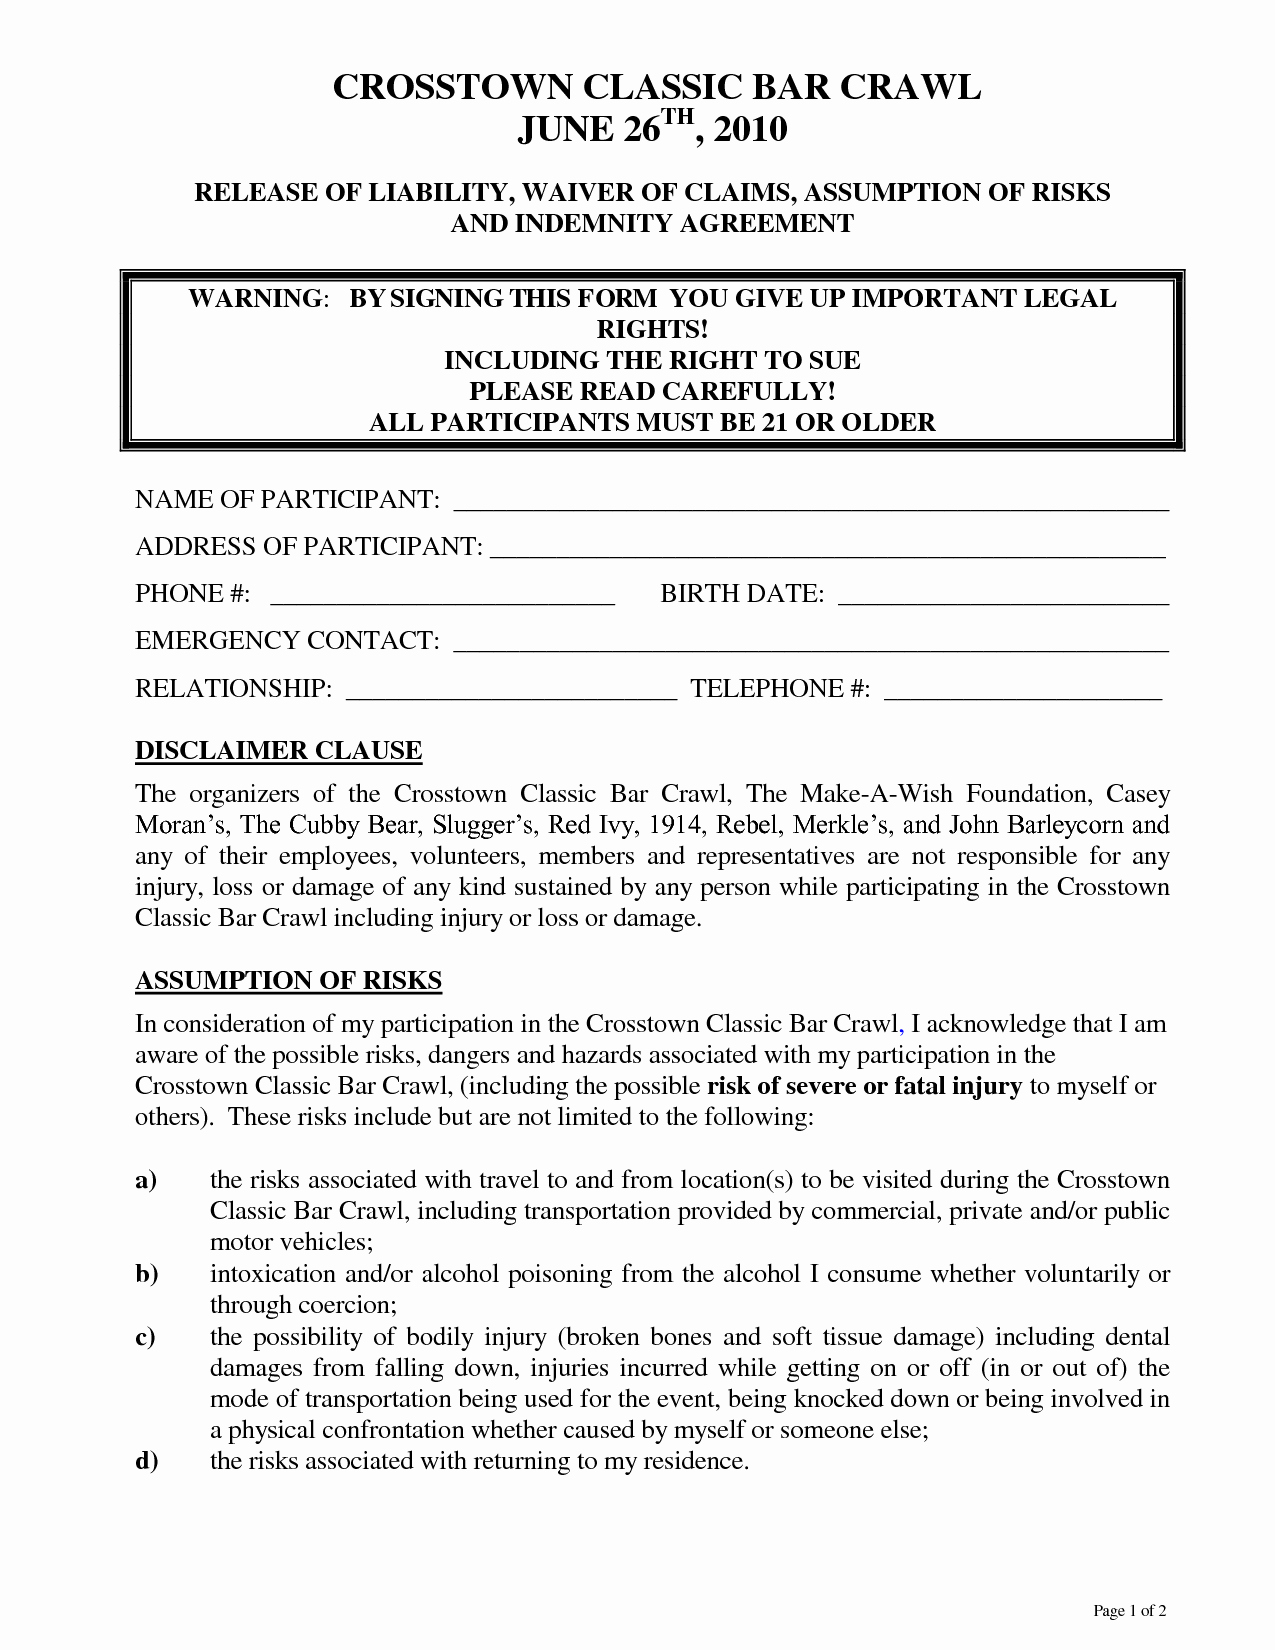 Free Liability Waiver Template New Liability Waiver Template Free Portablegasgrillweber